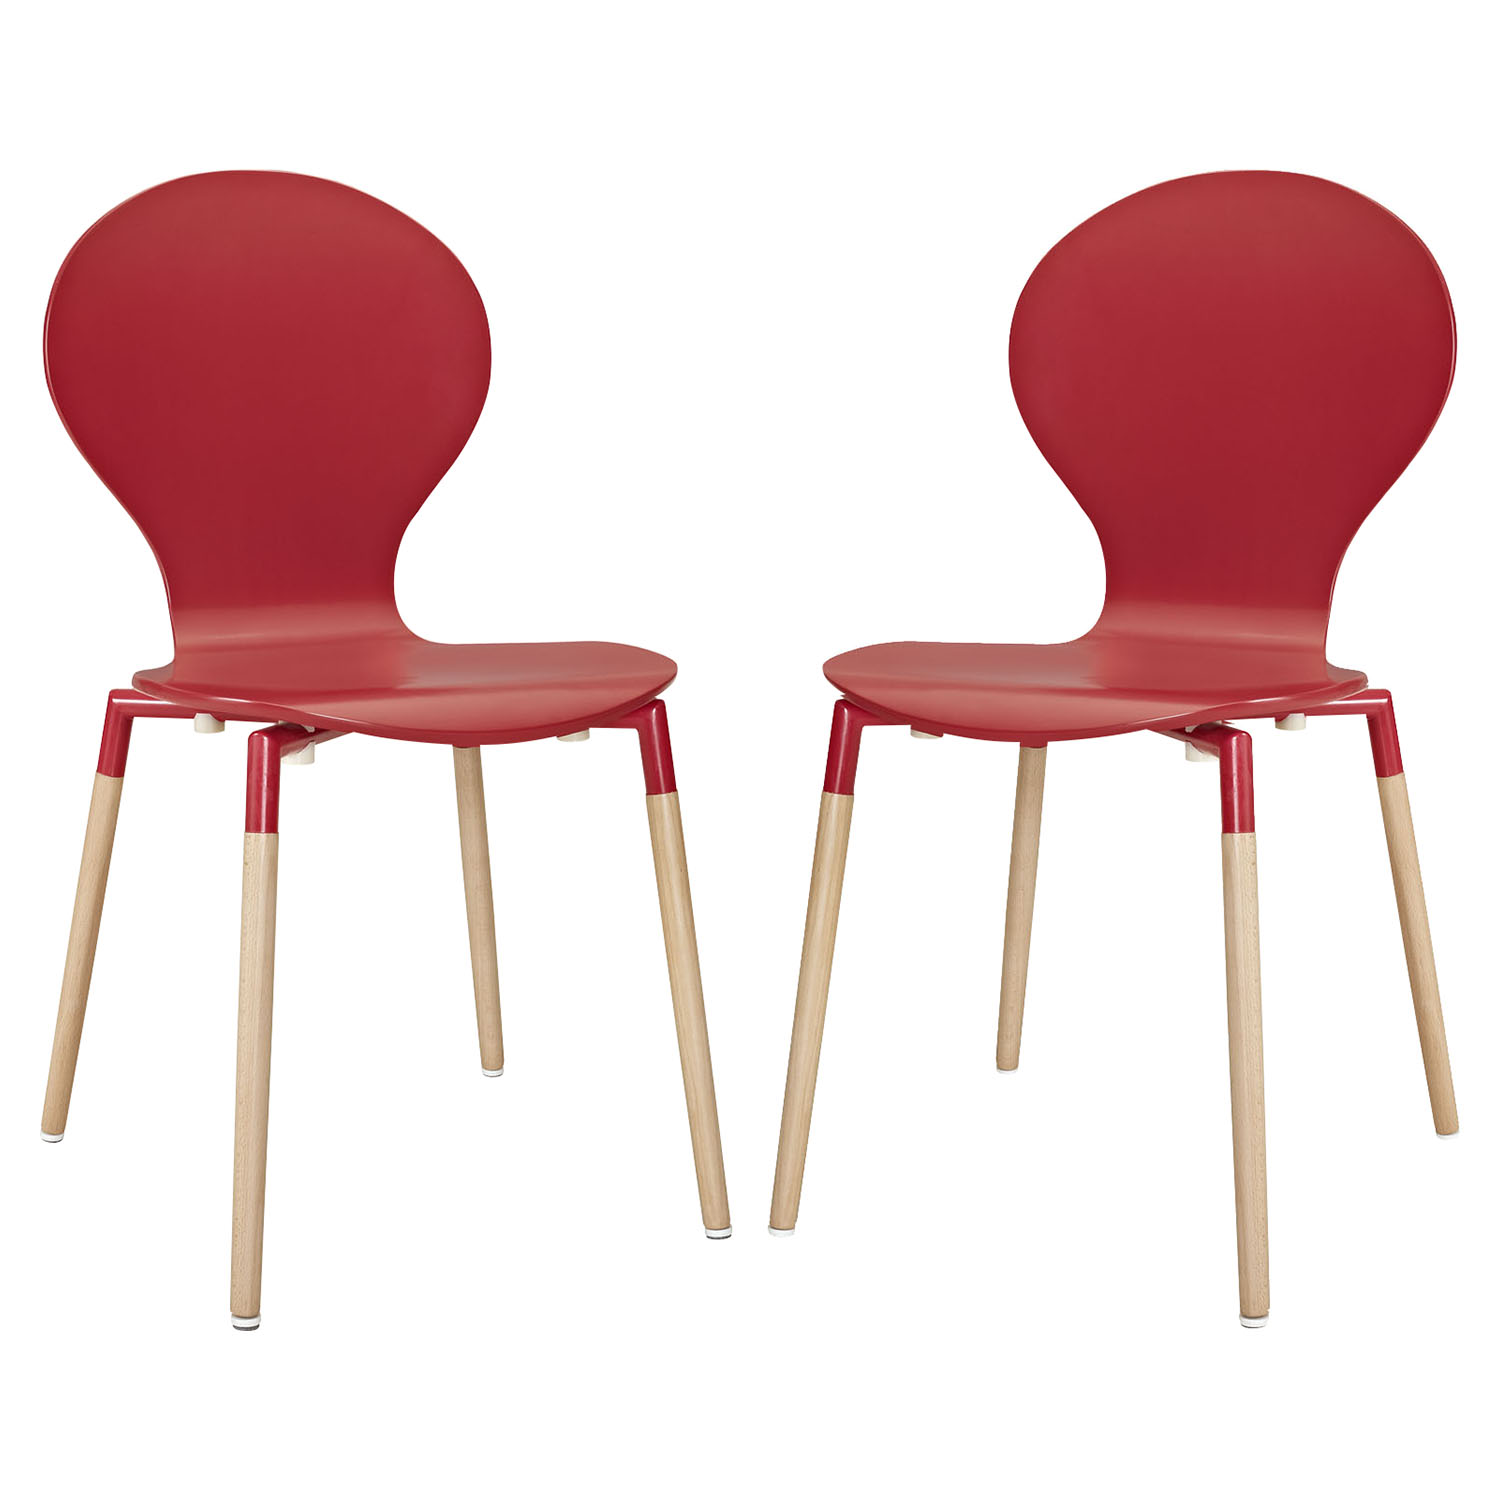 Path Dining Chair - Red (Set of 2) - EEI-1368-RED